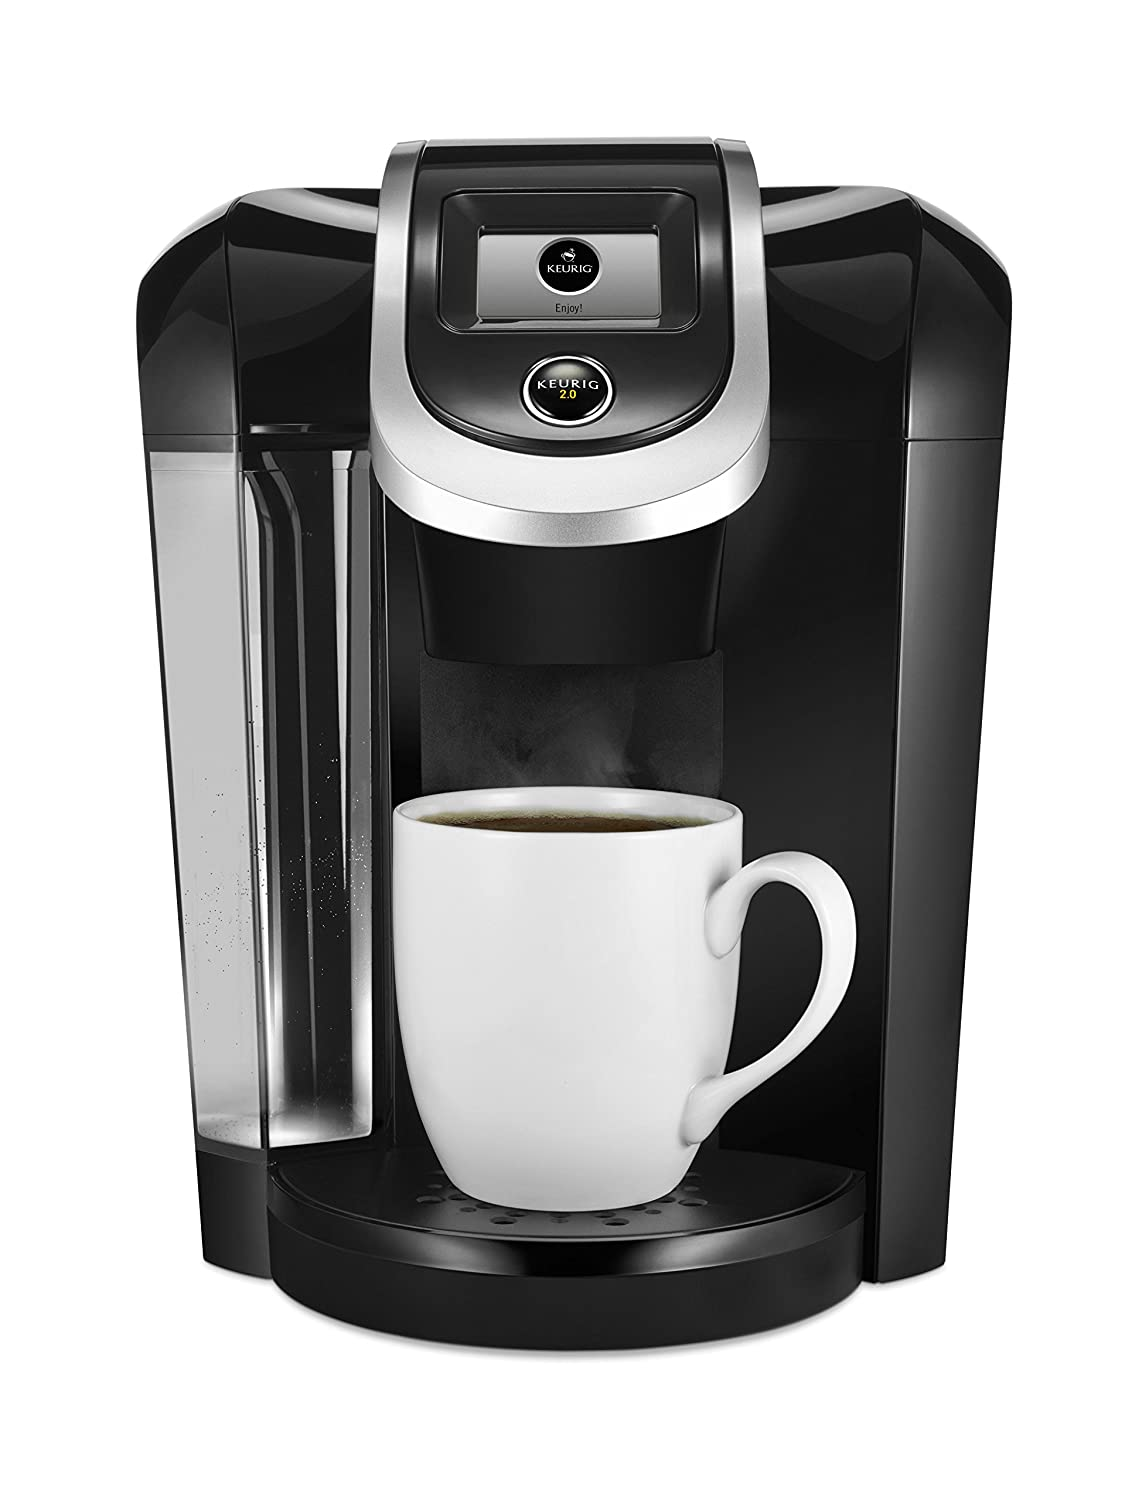 Amazon.com: Keurig K300 2.0 Brewing System (Discontinued): Kitchen & Dining